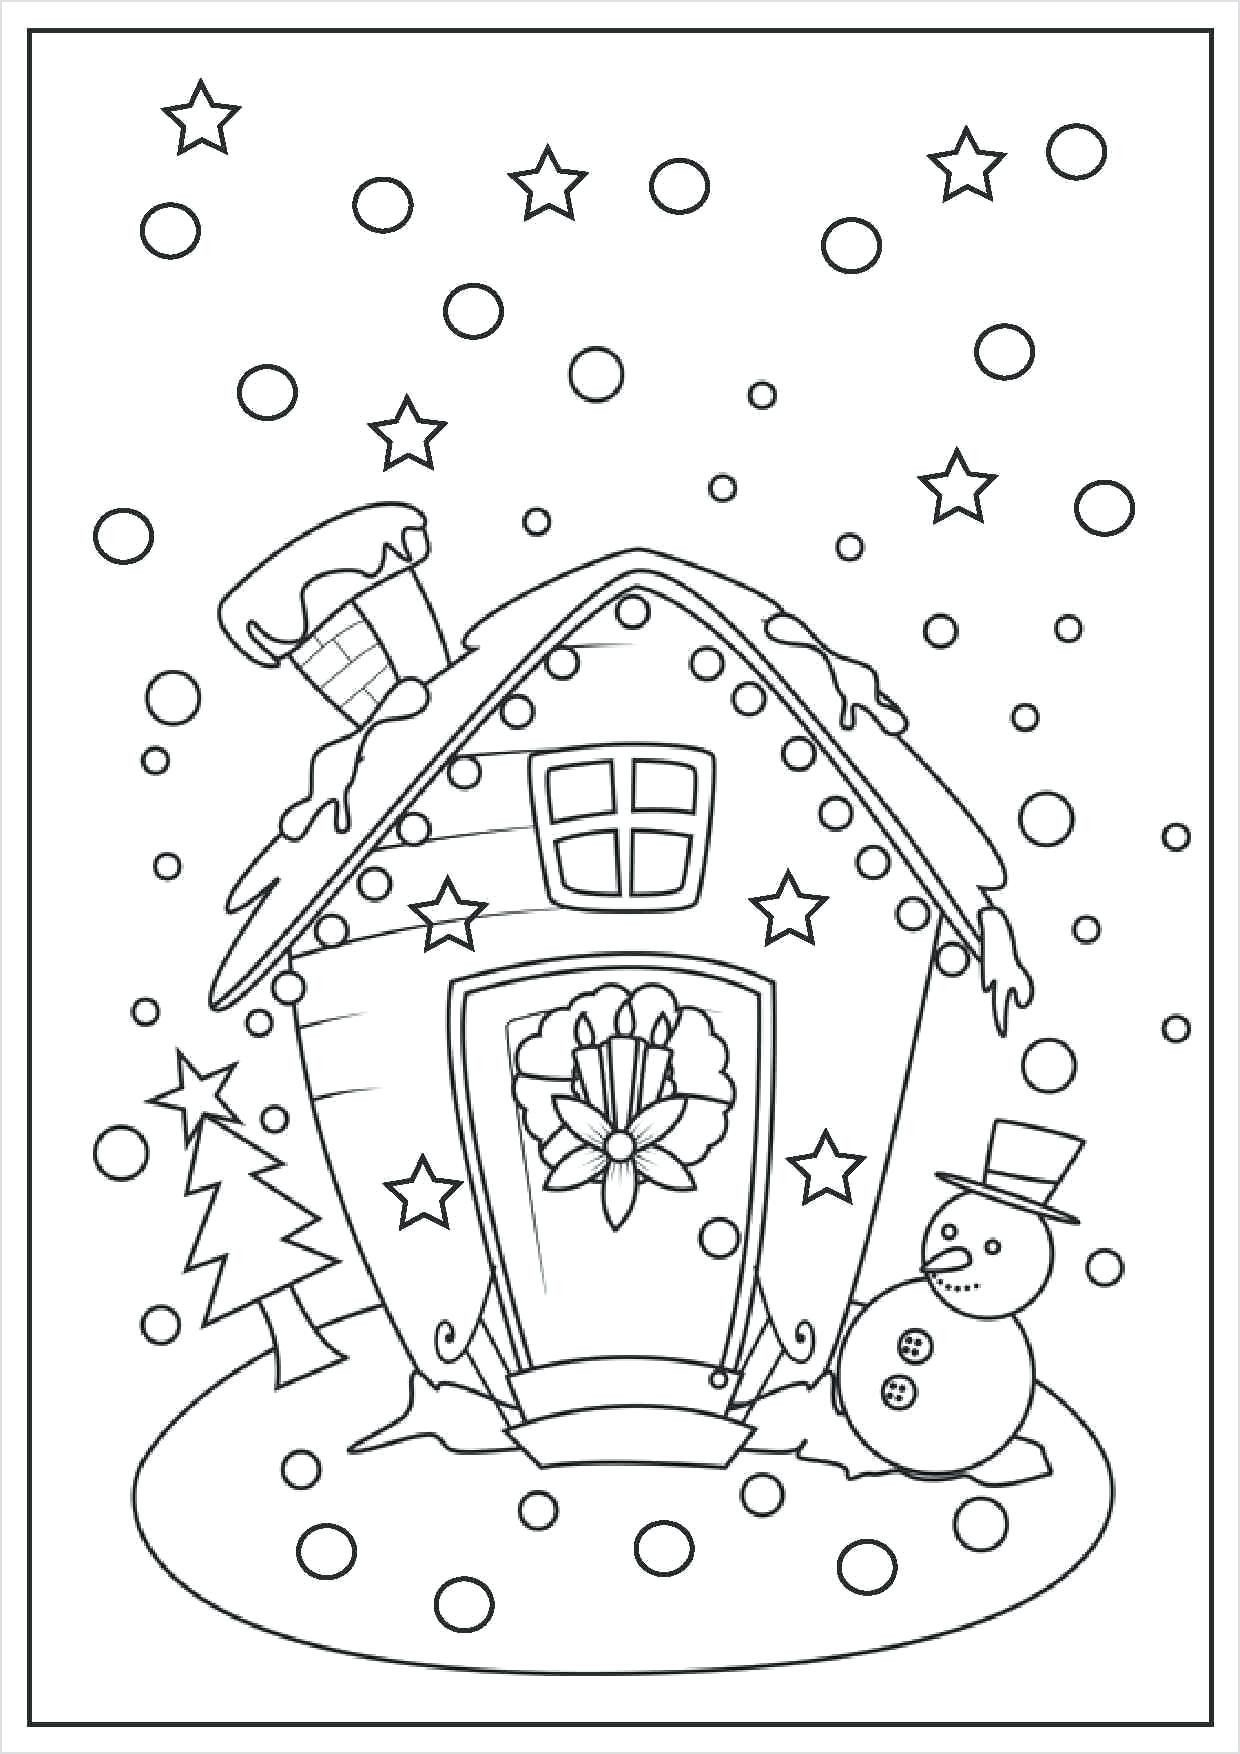 Animal Jam Coloring Pages Fresh 2nd Grade Fall Coloring Pages Code Printable Christmas Coloring Pages Free Christmas Coloring Pages Christmas Coloring Sheets